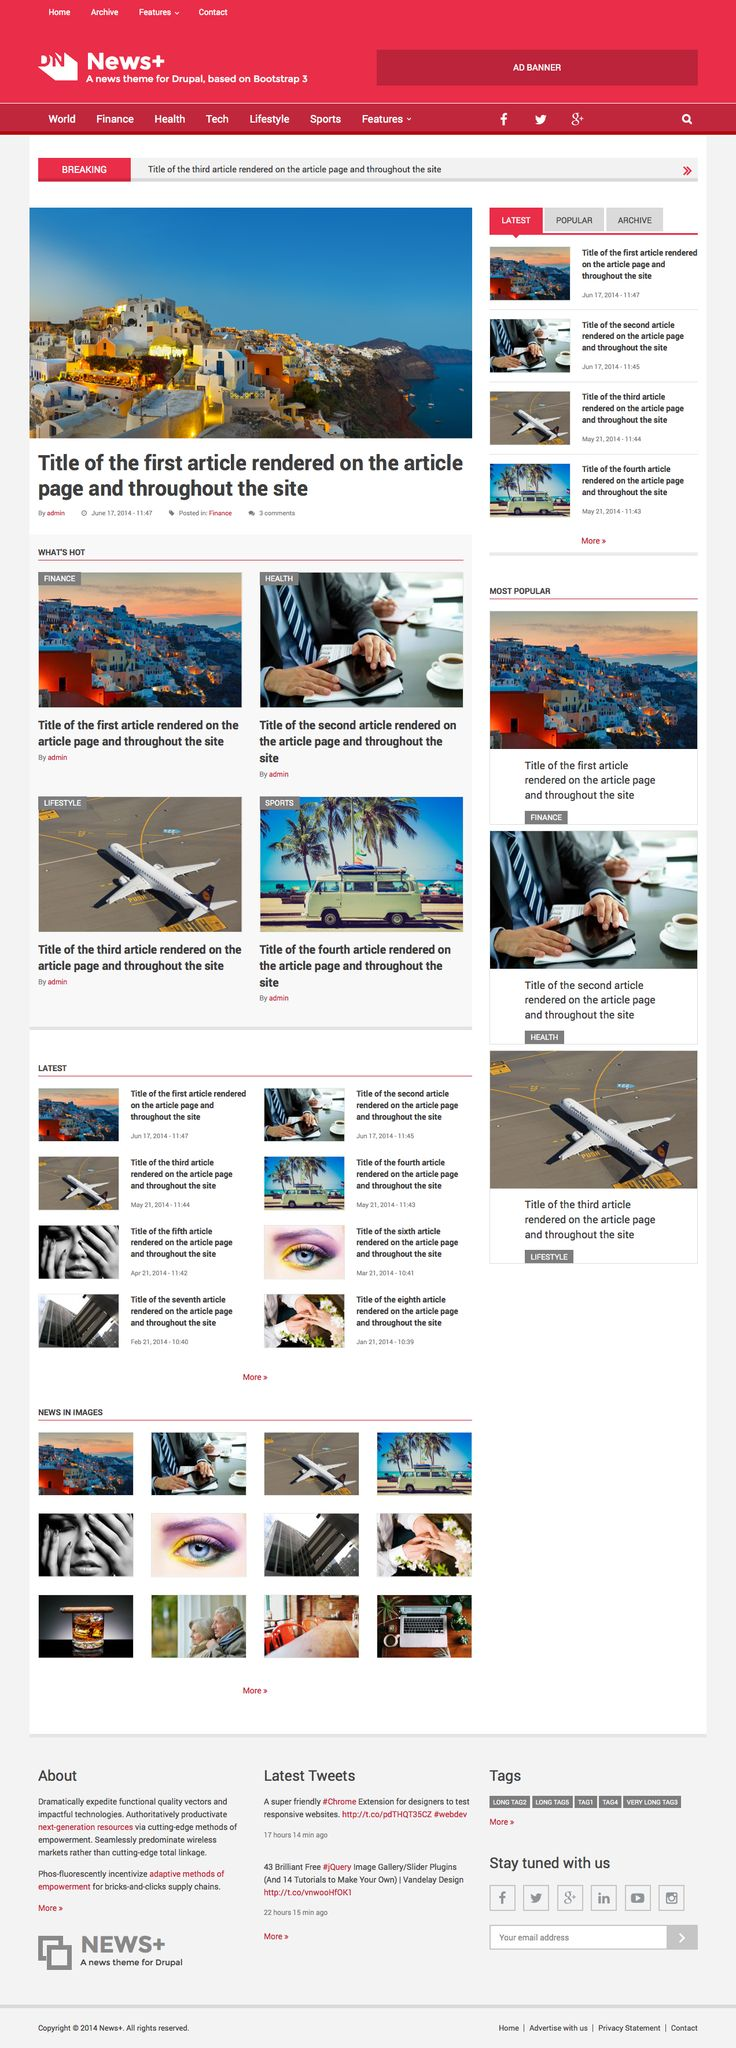 News+ theme for Drupal. A powerful Drupal theme to power your News/Portal site. With tons of special features to enhance your visitors' experience.